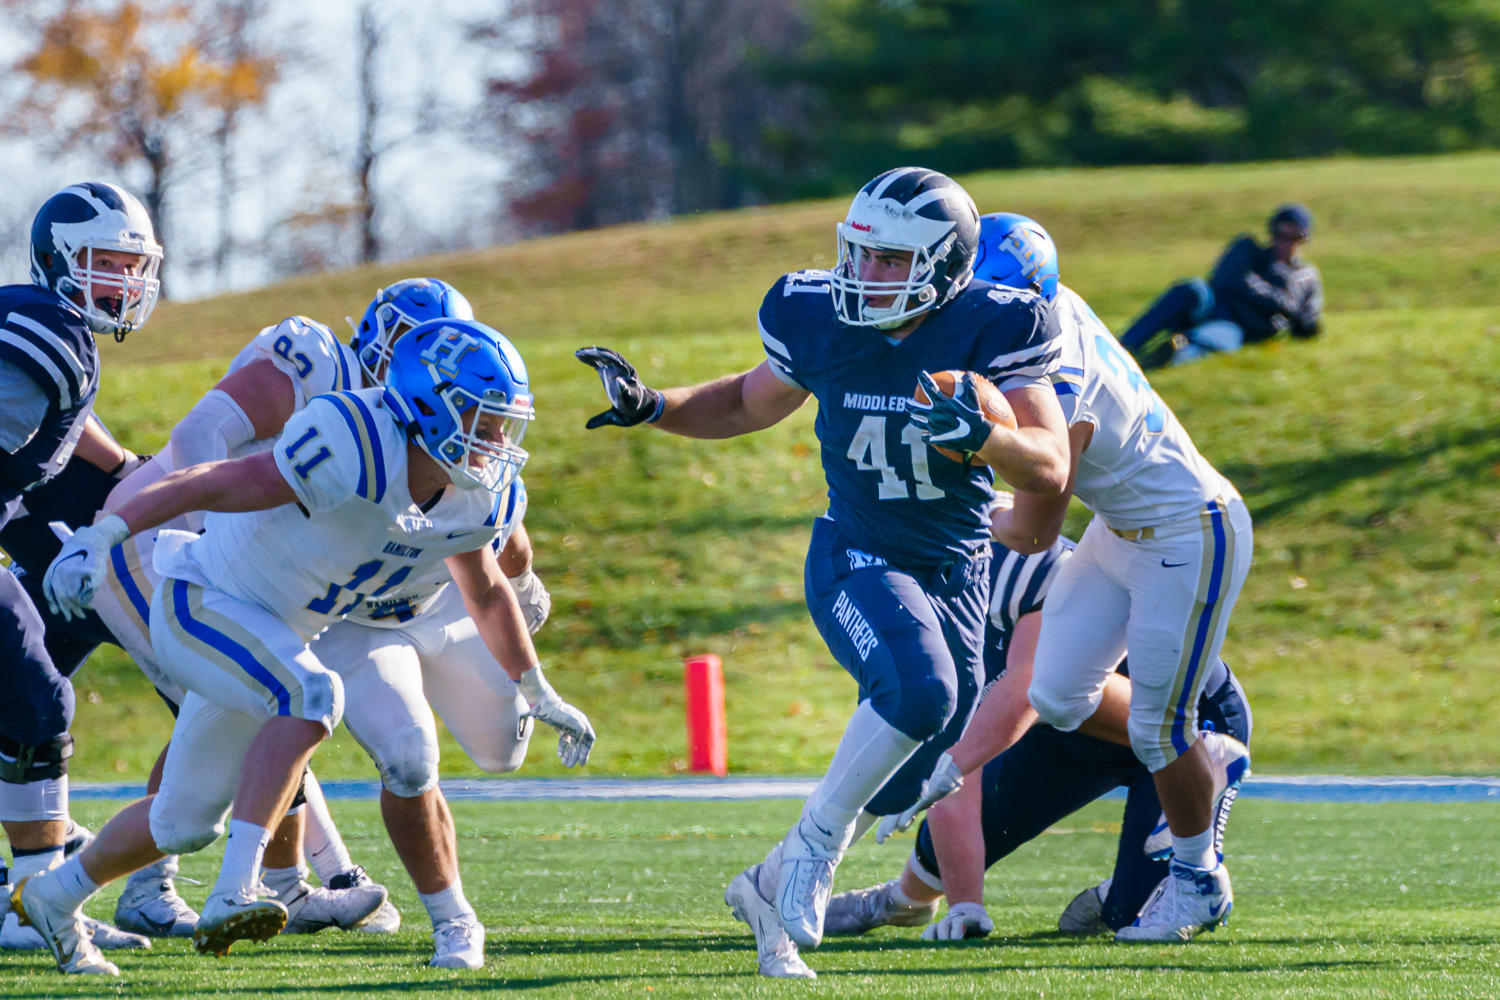 Middlebury Football vs. Hamilton